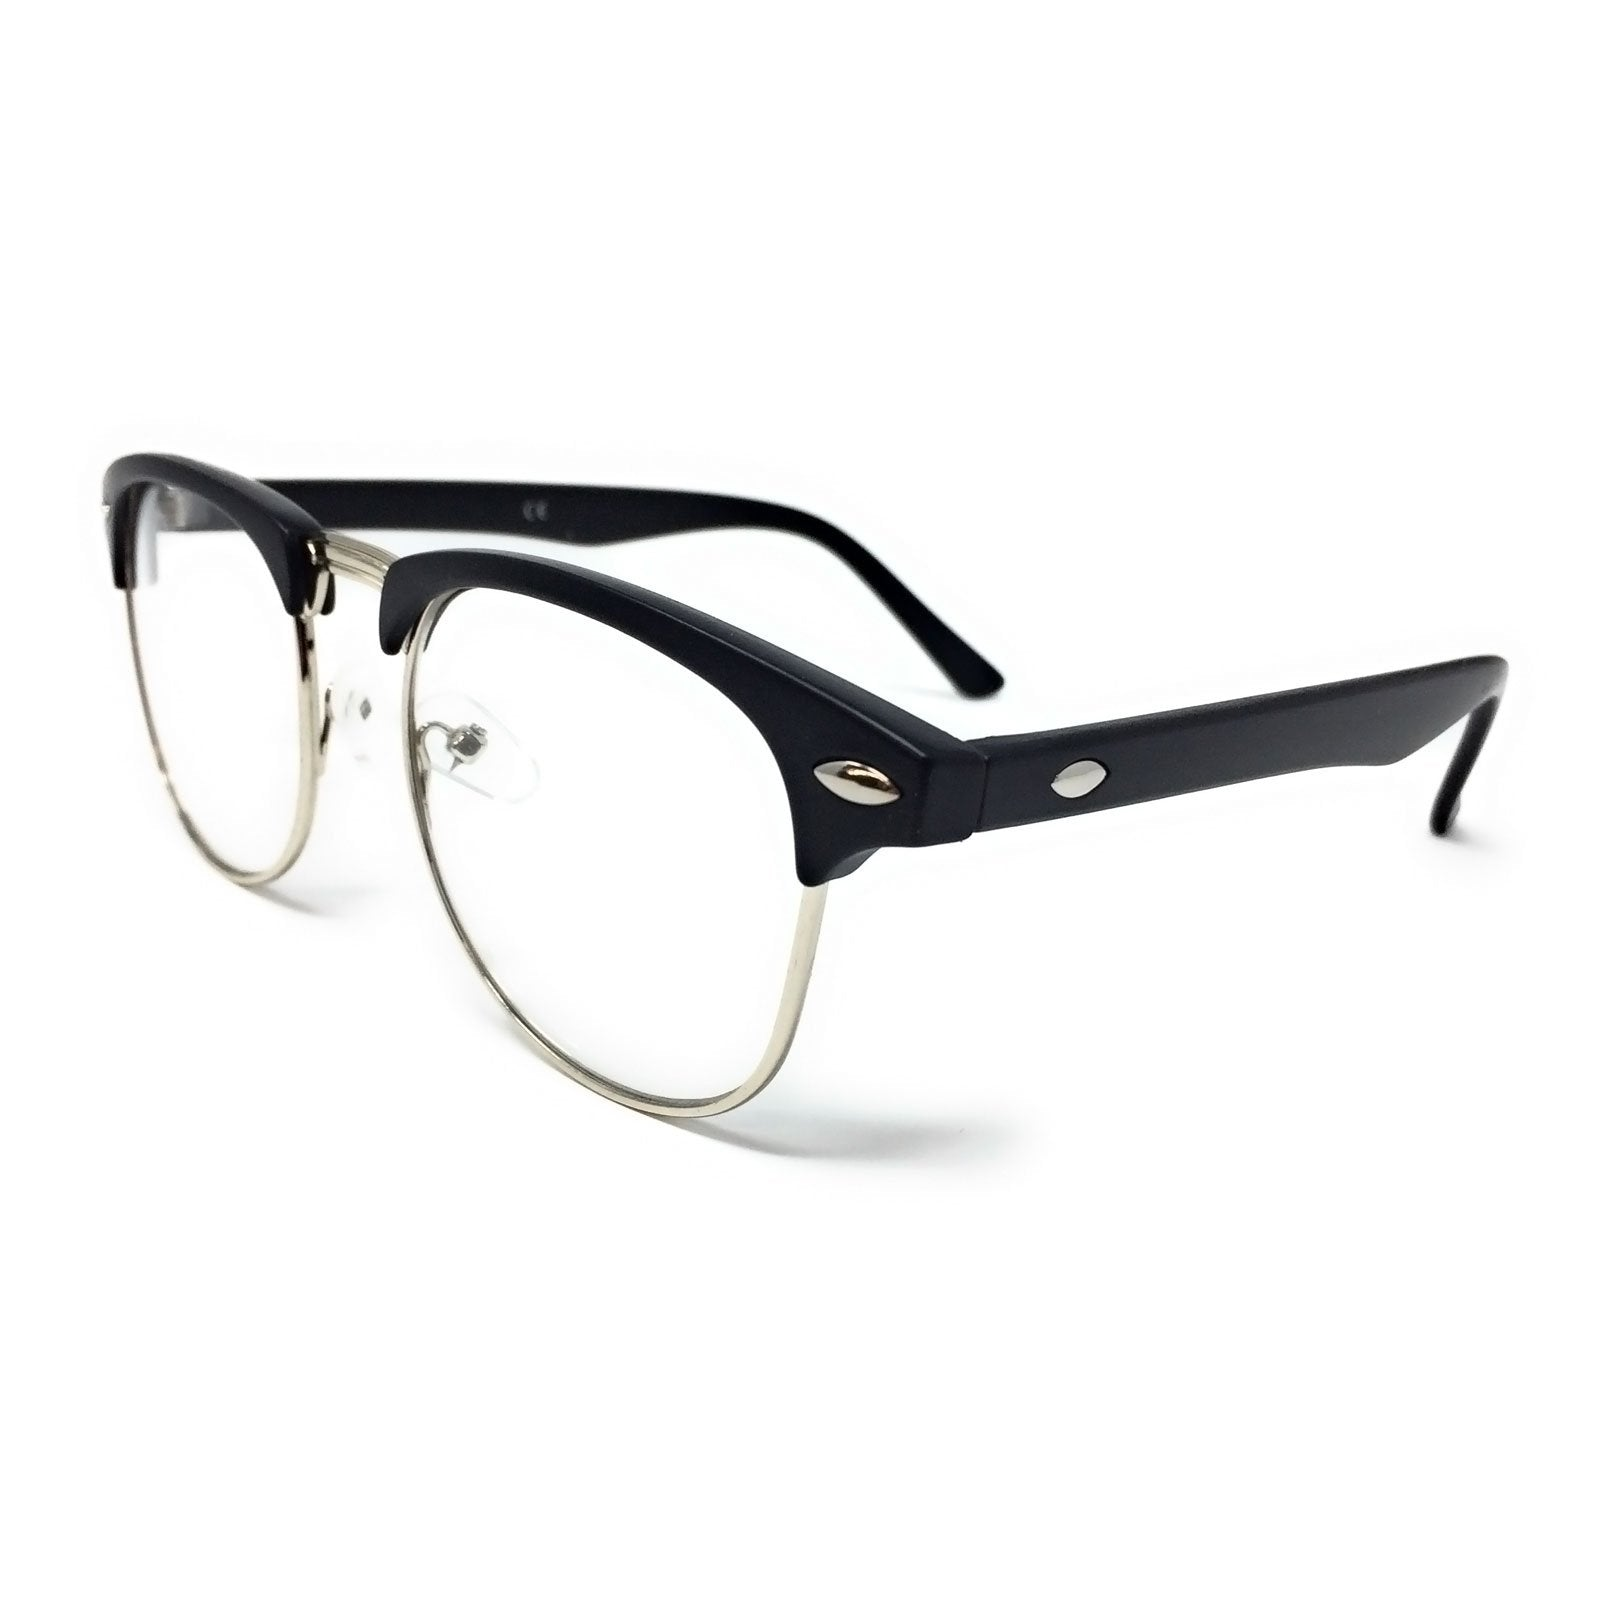 Wholesale Kids 1950s Half Rim Clear Lens Glasses - Matte Black Frame